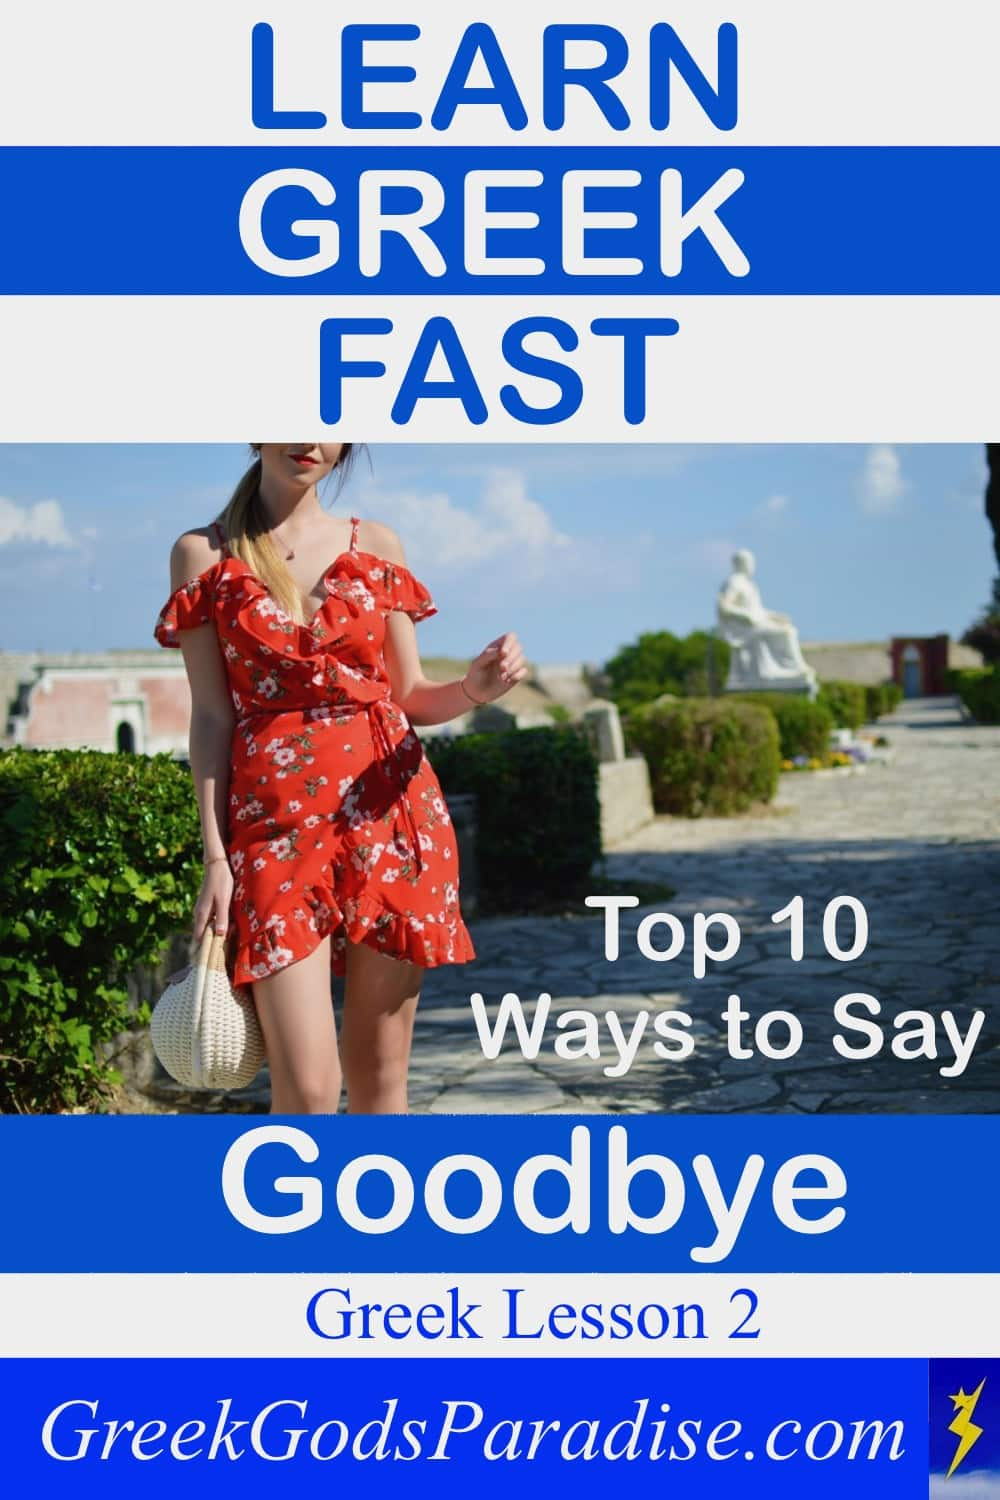 Ways to Say Goodbye in Greek Lesson